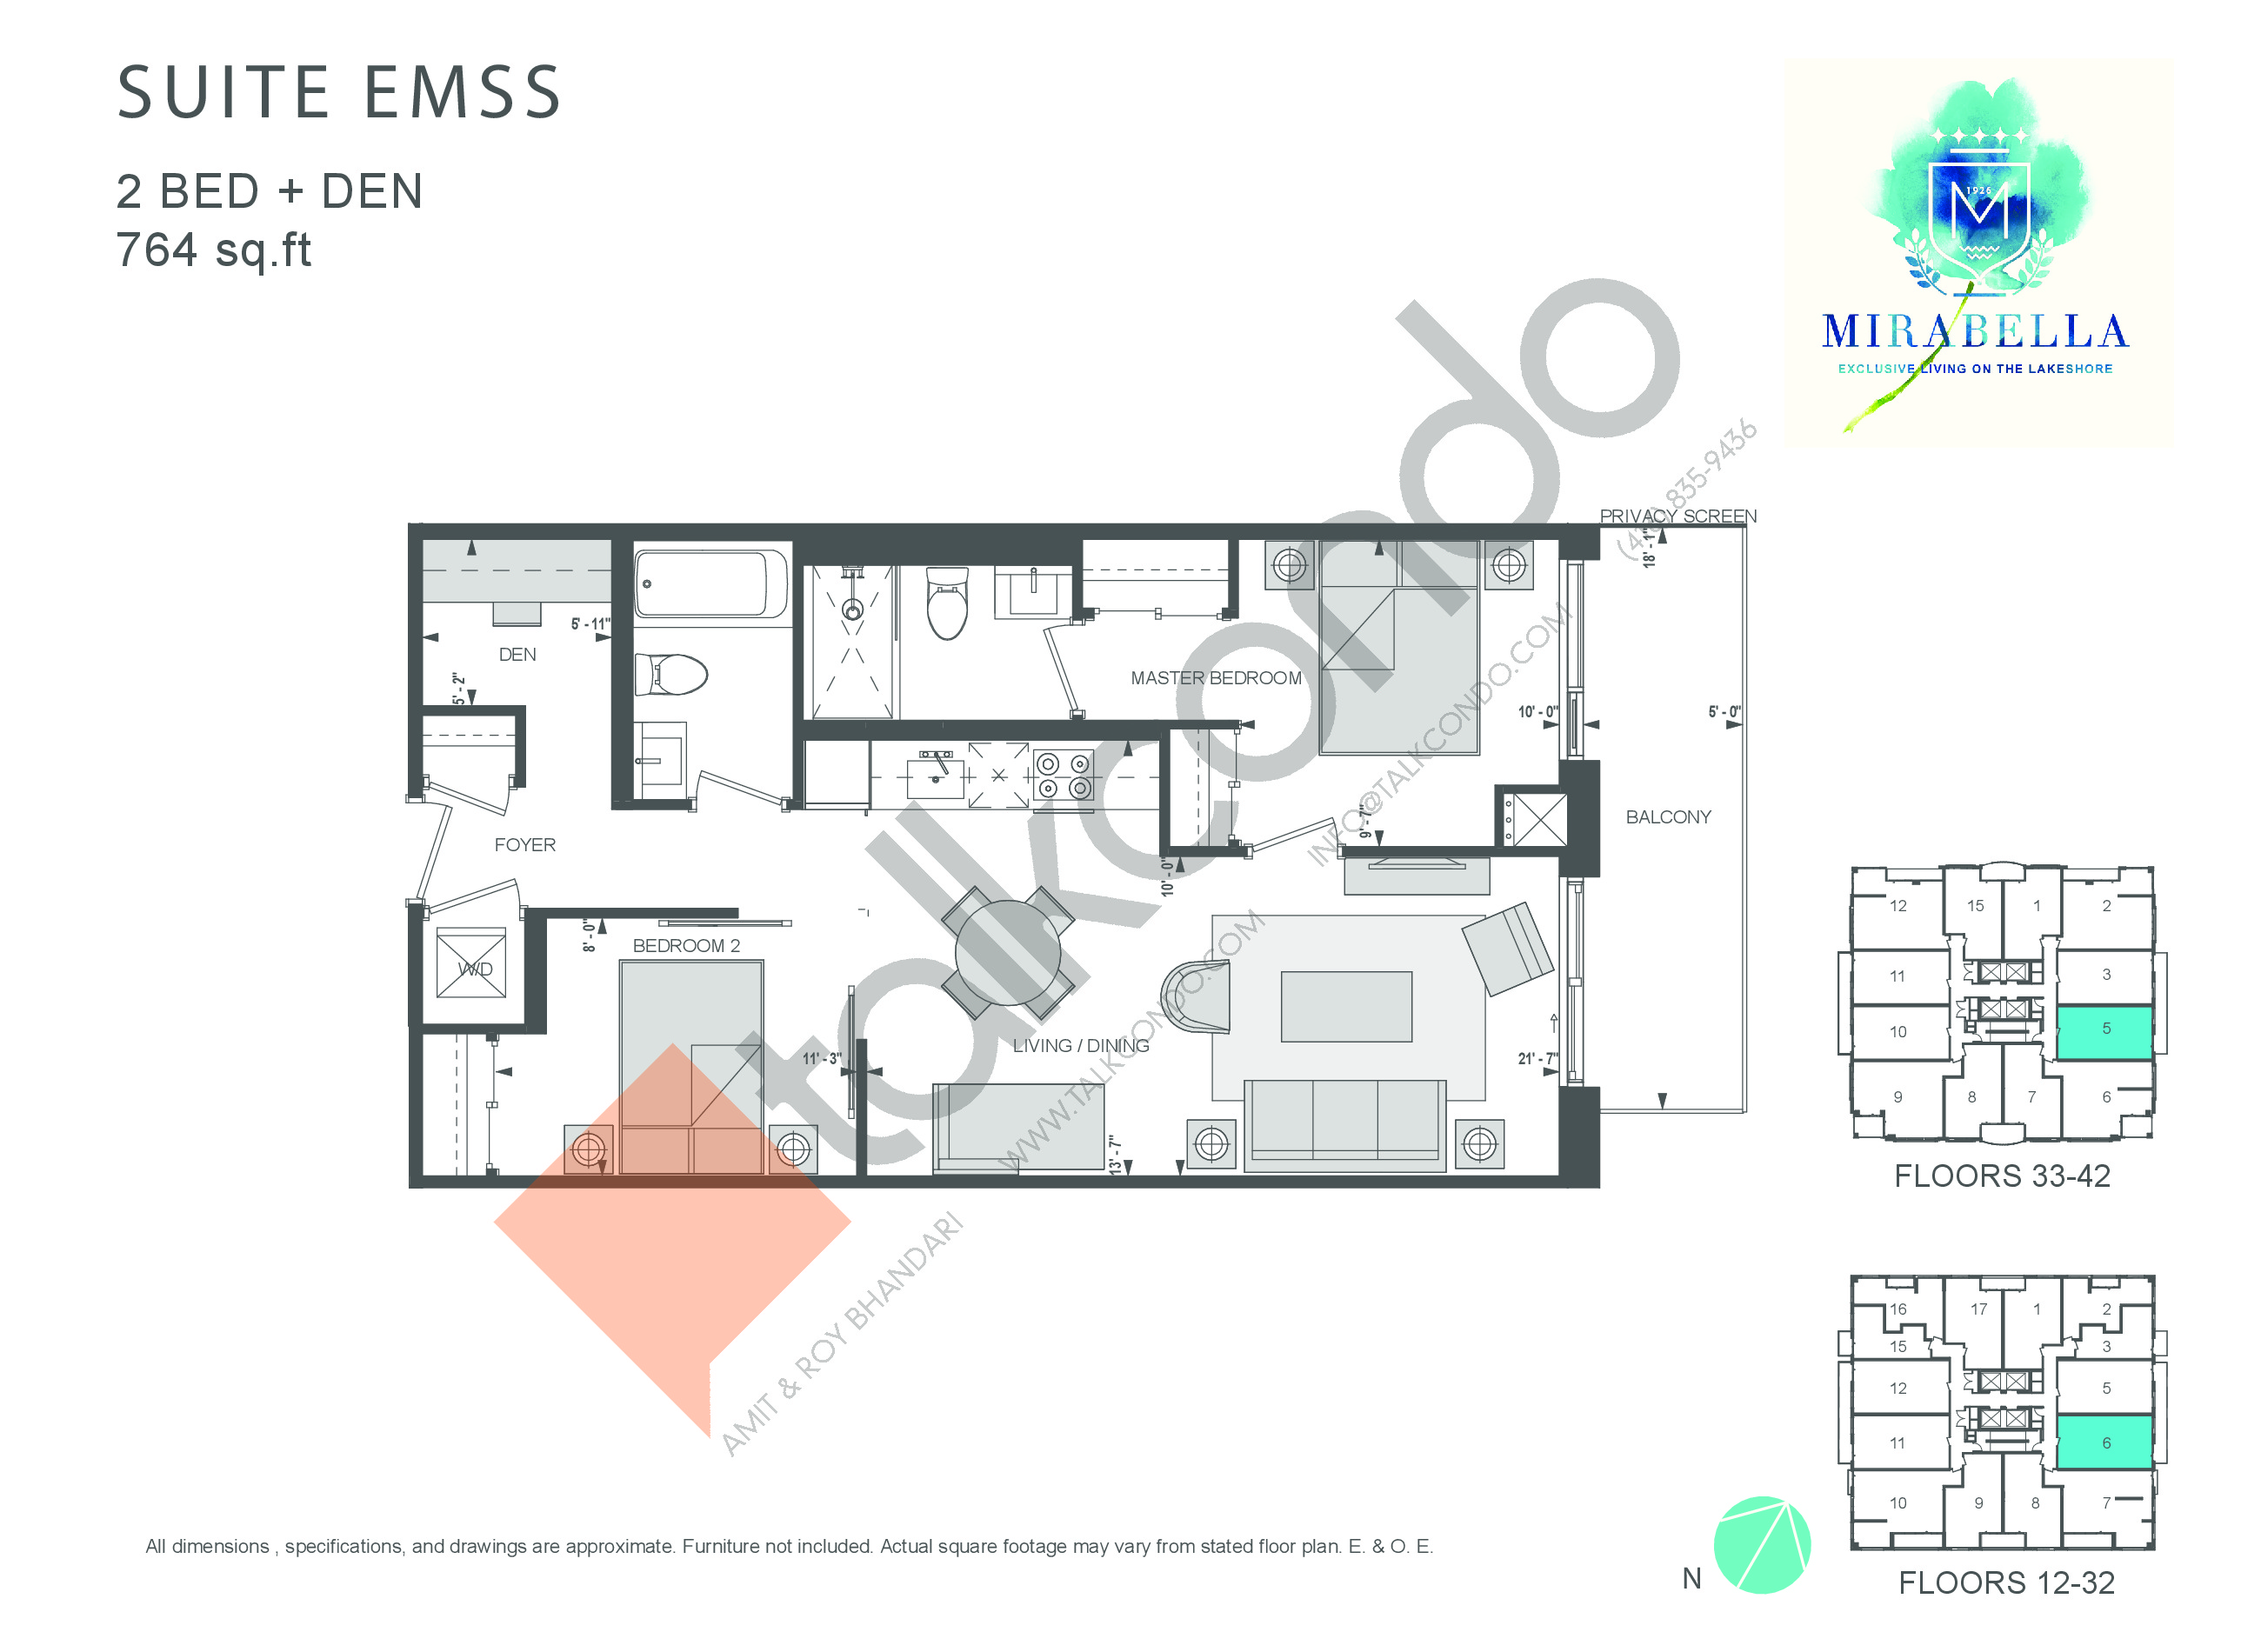 Suite EMSS Floor Plan at Mirabella Luxury Condos East Tower - 764 sq.ft